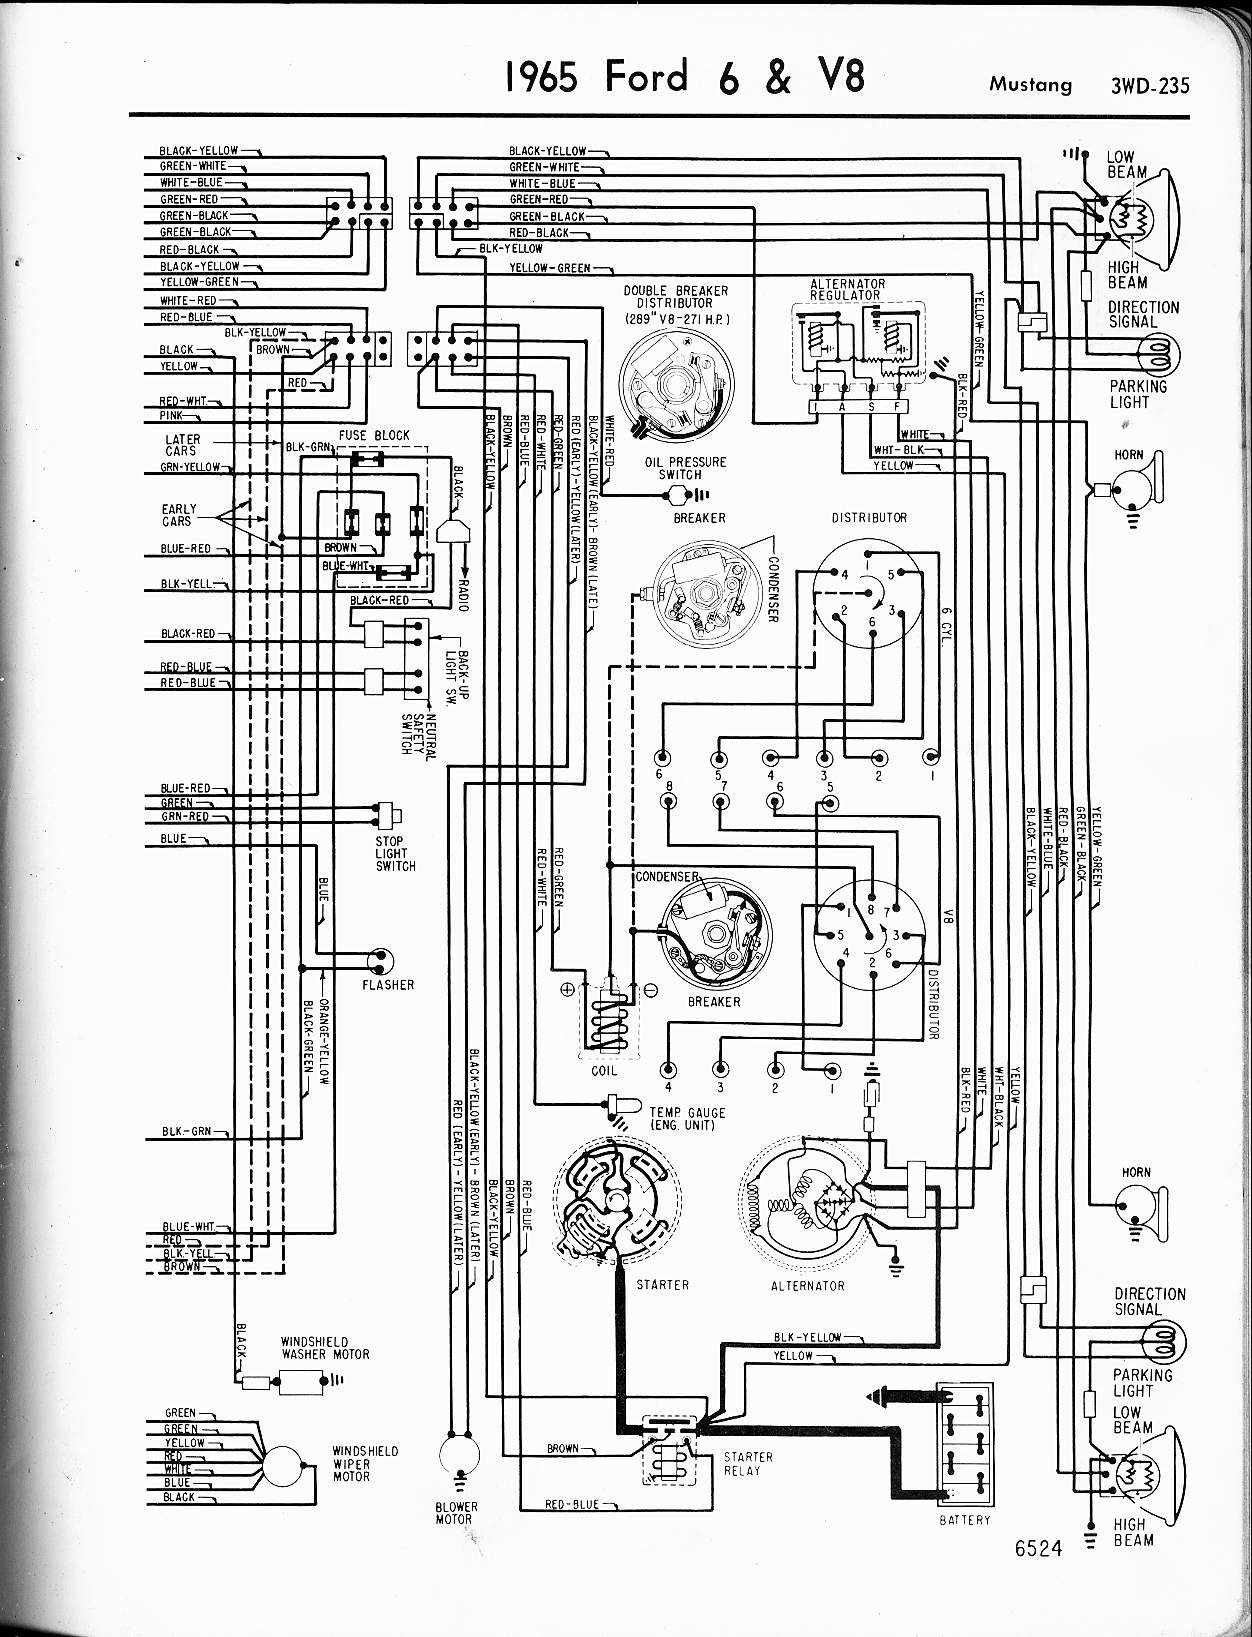 Wiring Diagram For 66 Mustang Ignition Switch, Wiring